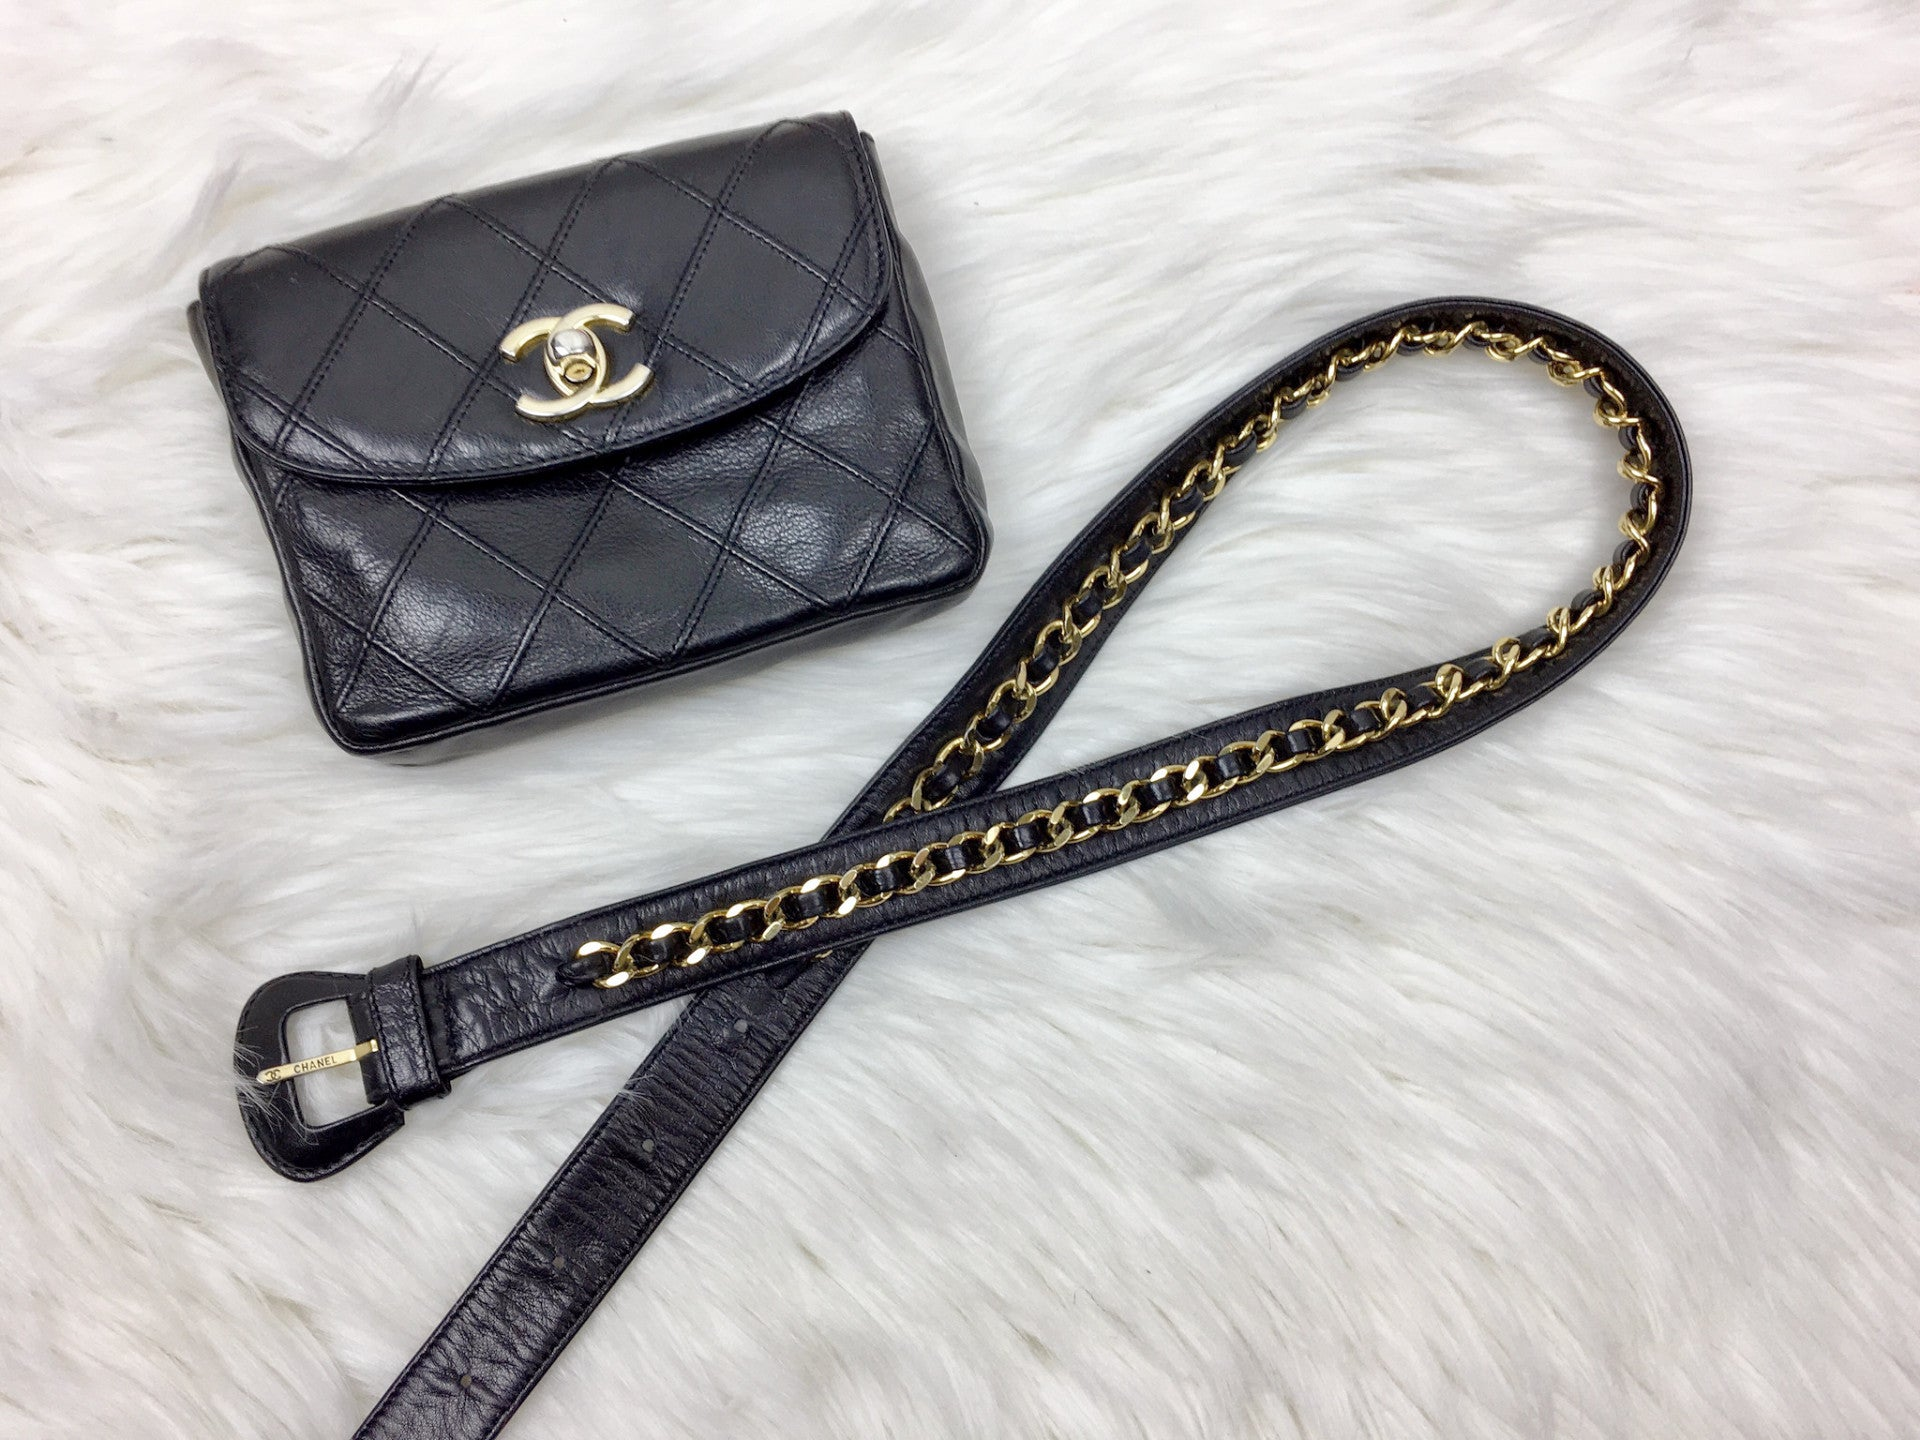 eb9ef216de55 CHANEL Black Lambskin Quilted Bum Bag (Waist Bag) – Pretty Things ...